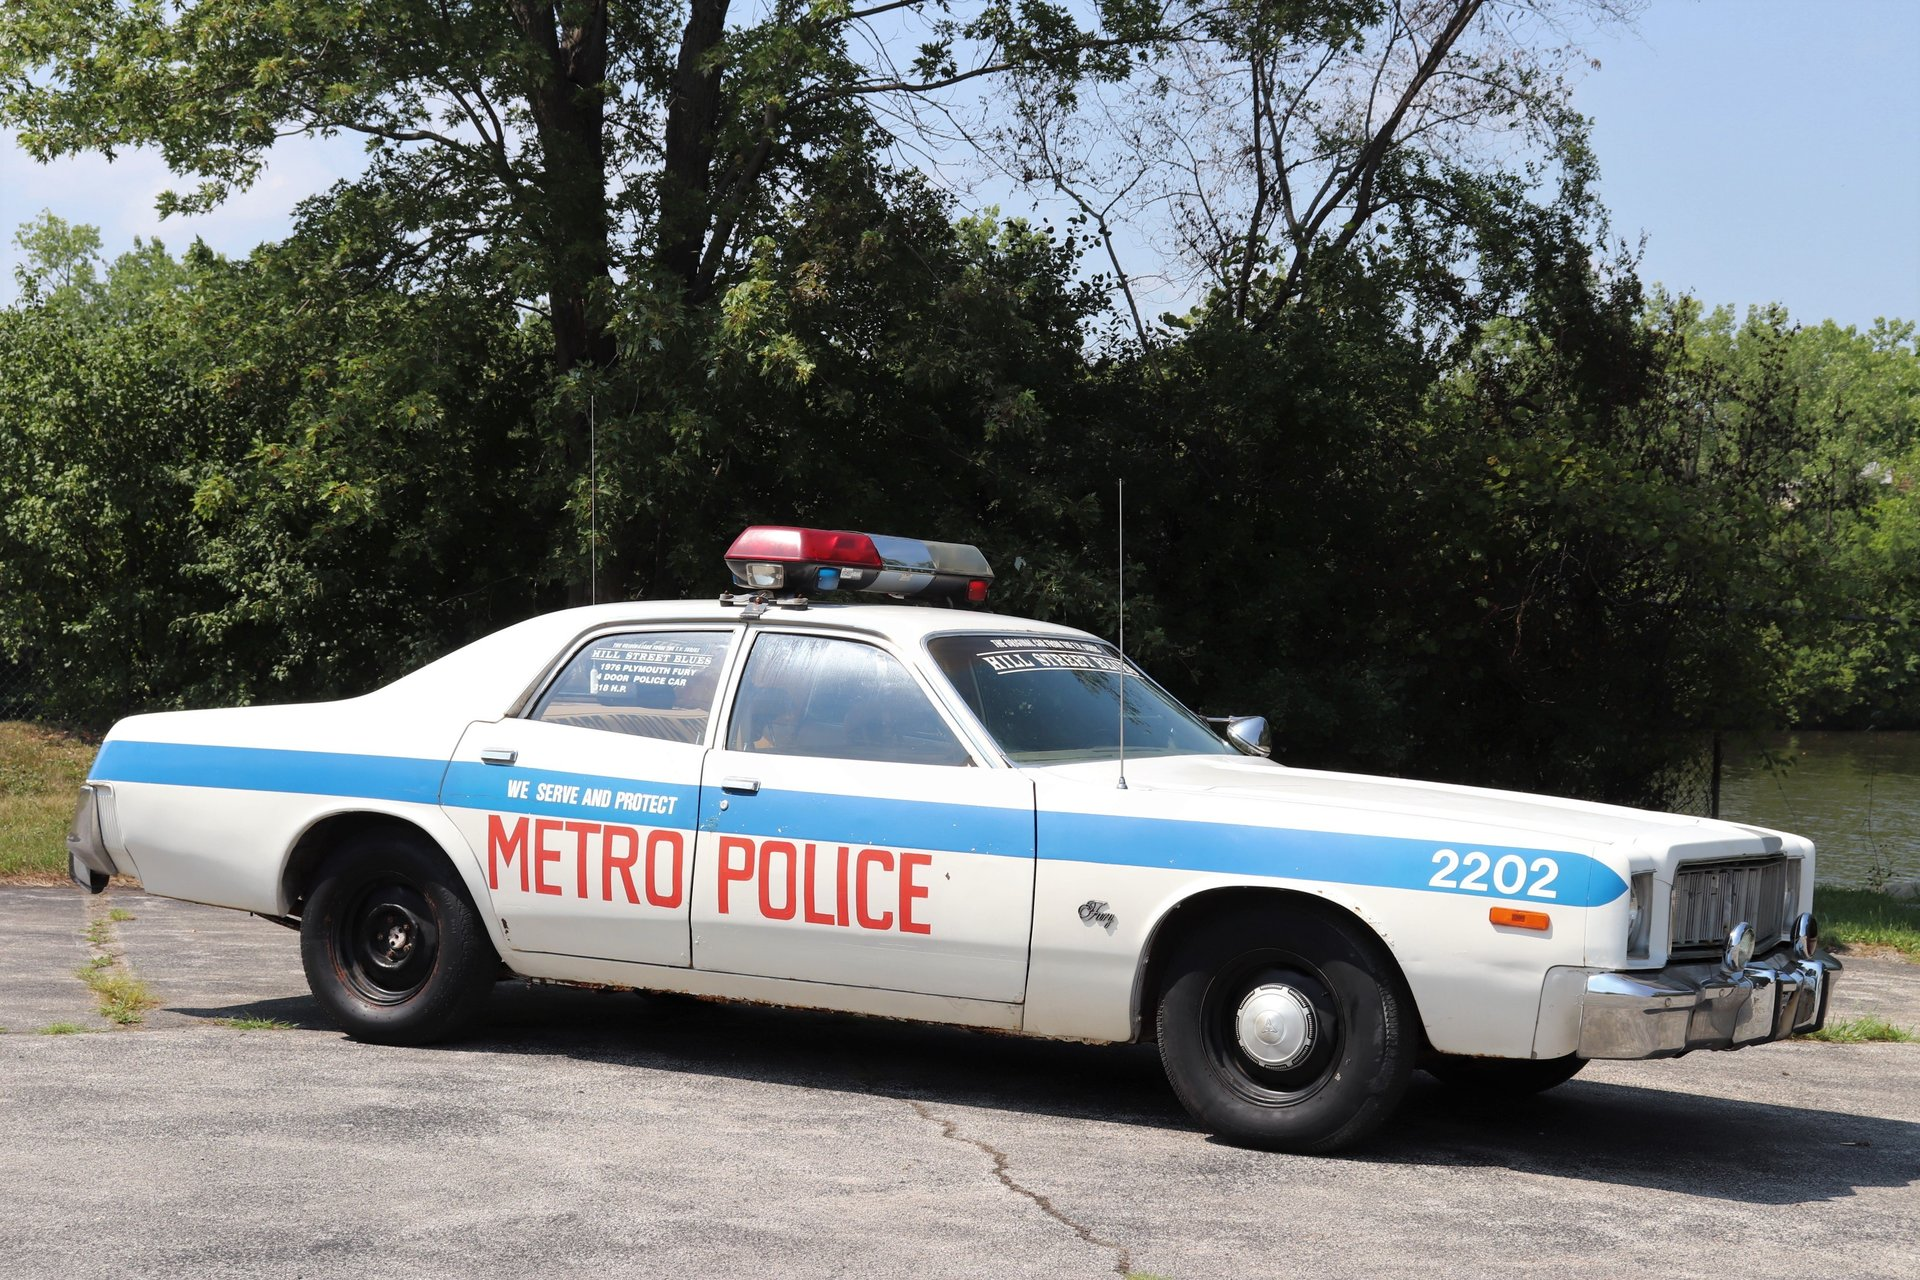 1976 Plymouth Fury Hill Street Blues TV Police Car for sale